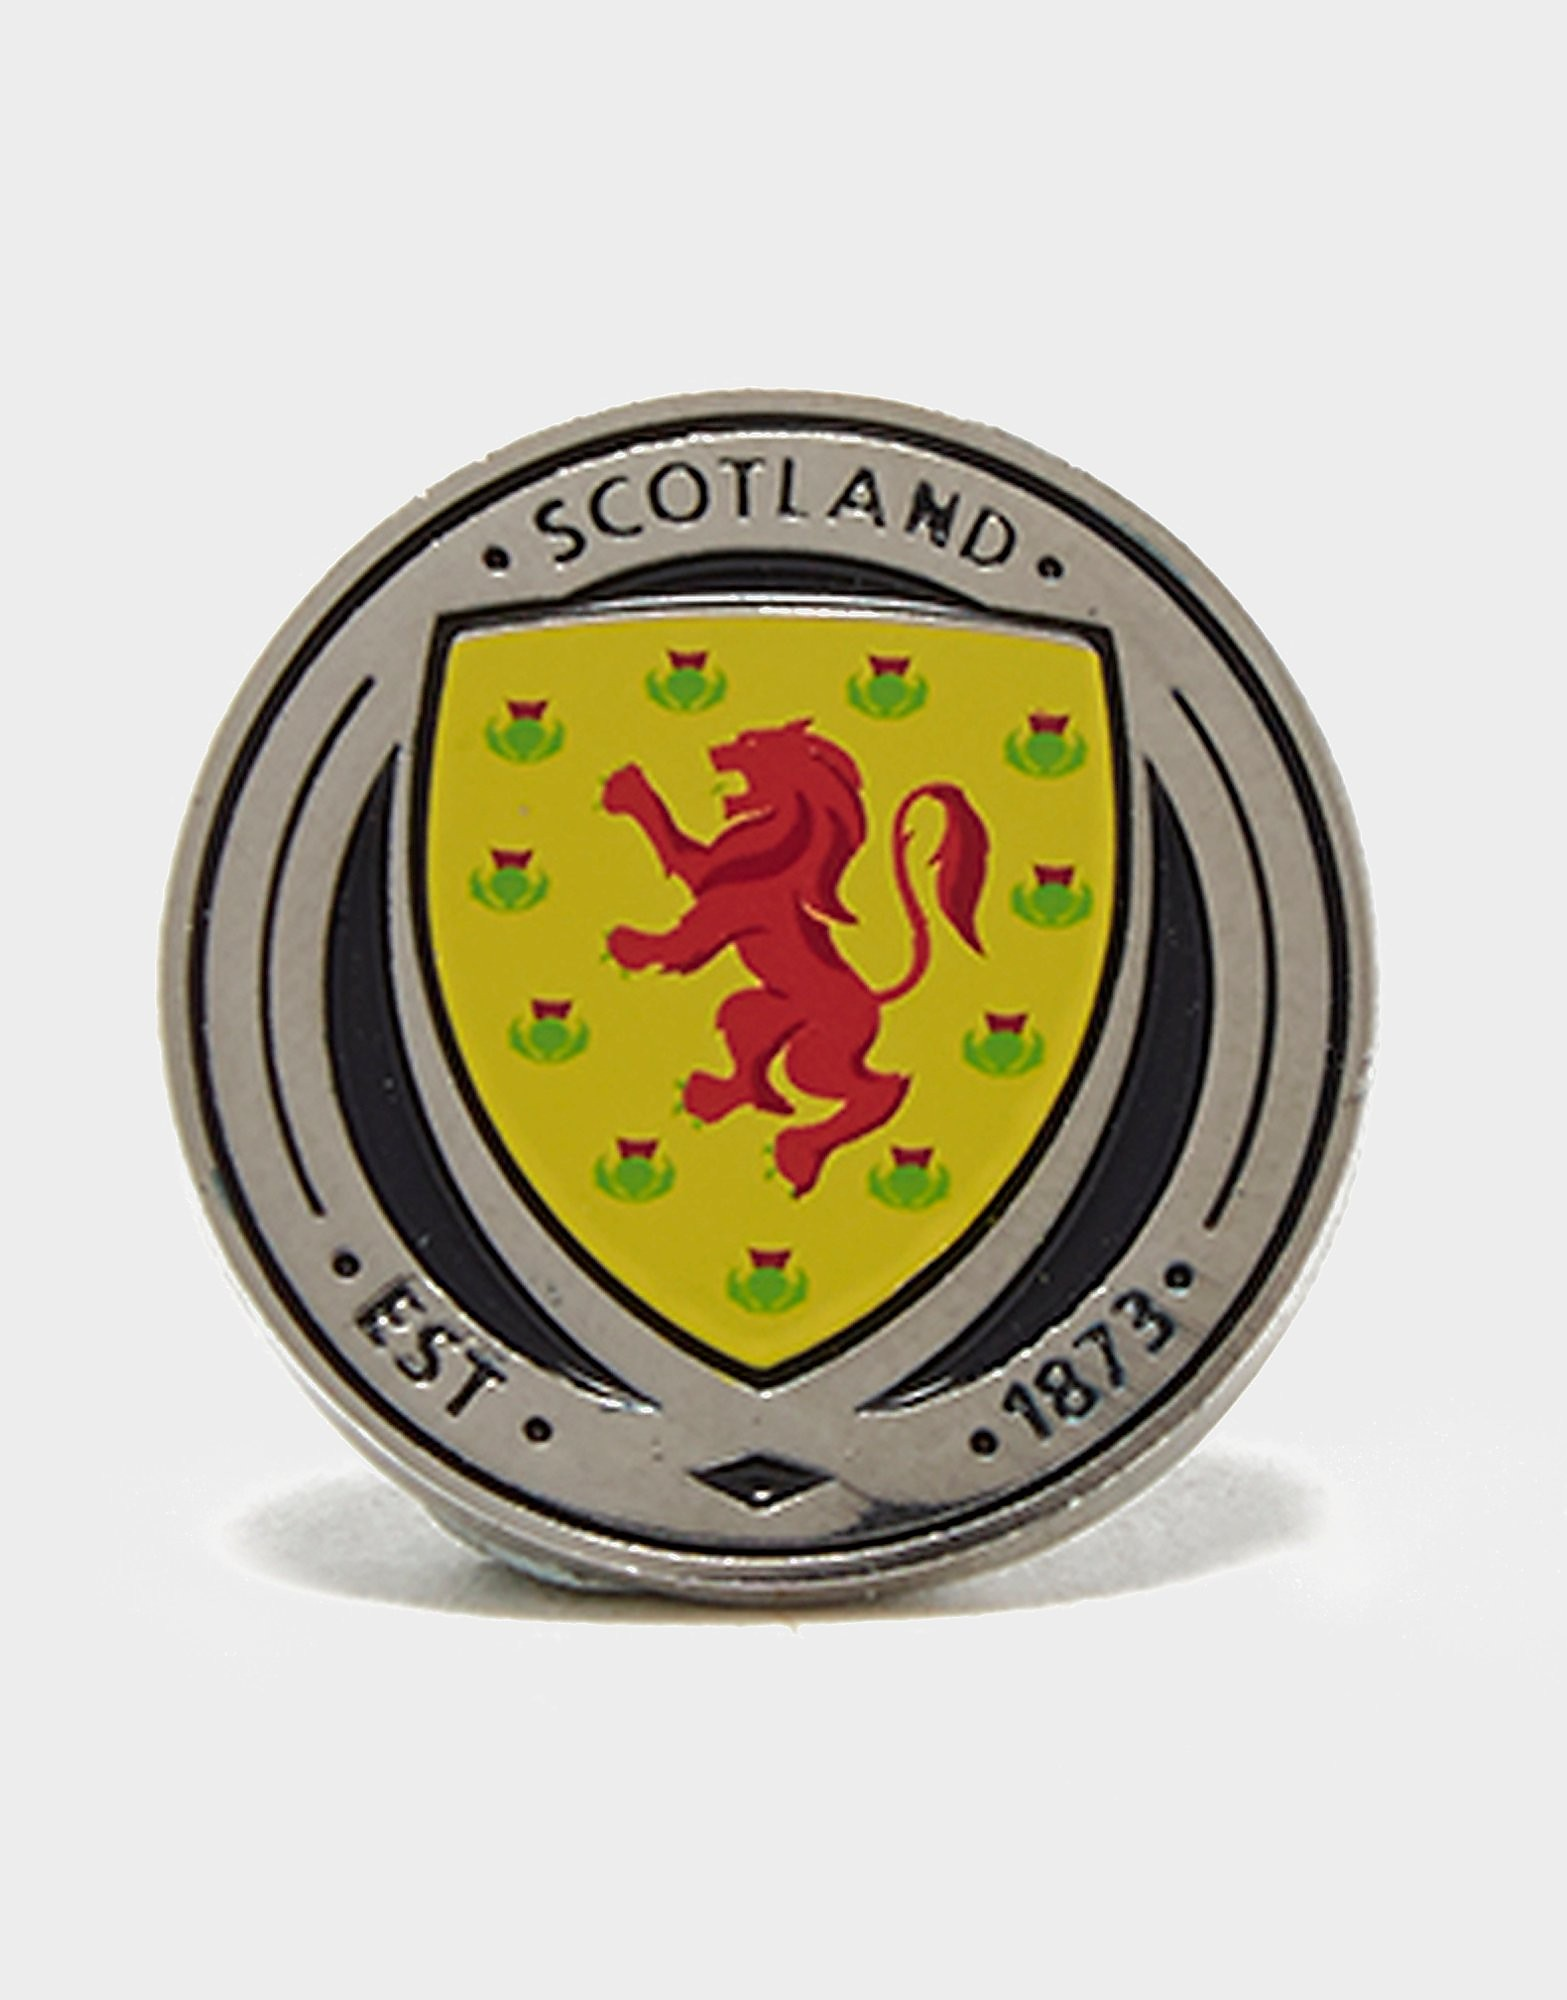 Official Team Badge met embleem van Scotland FA